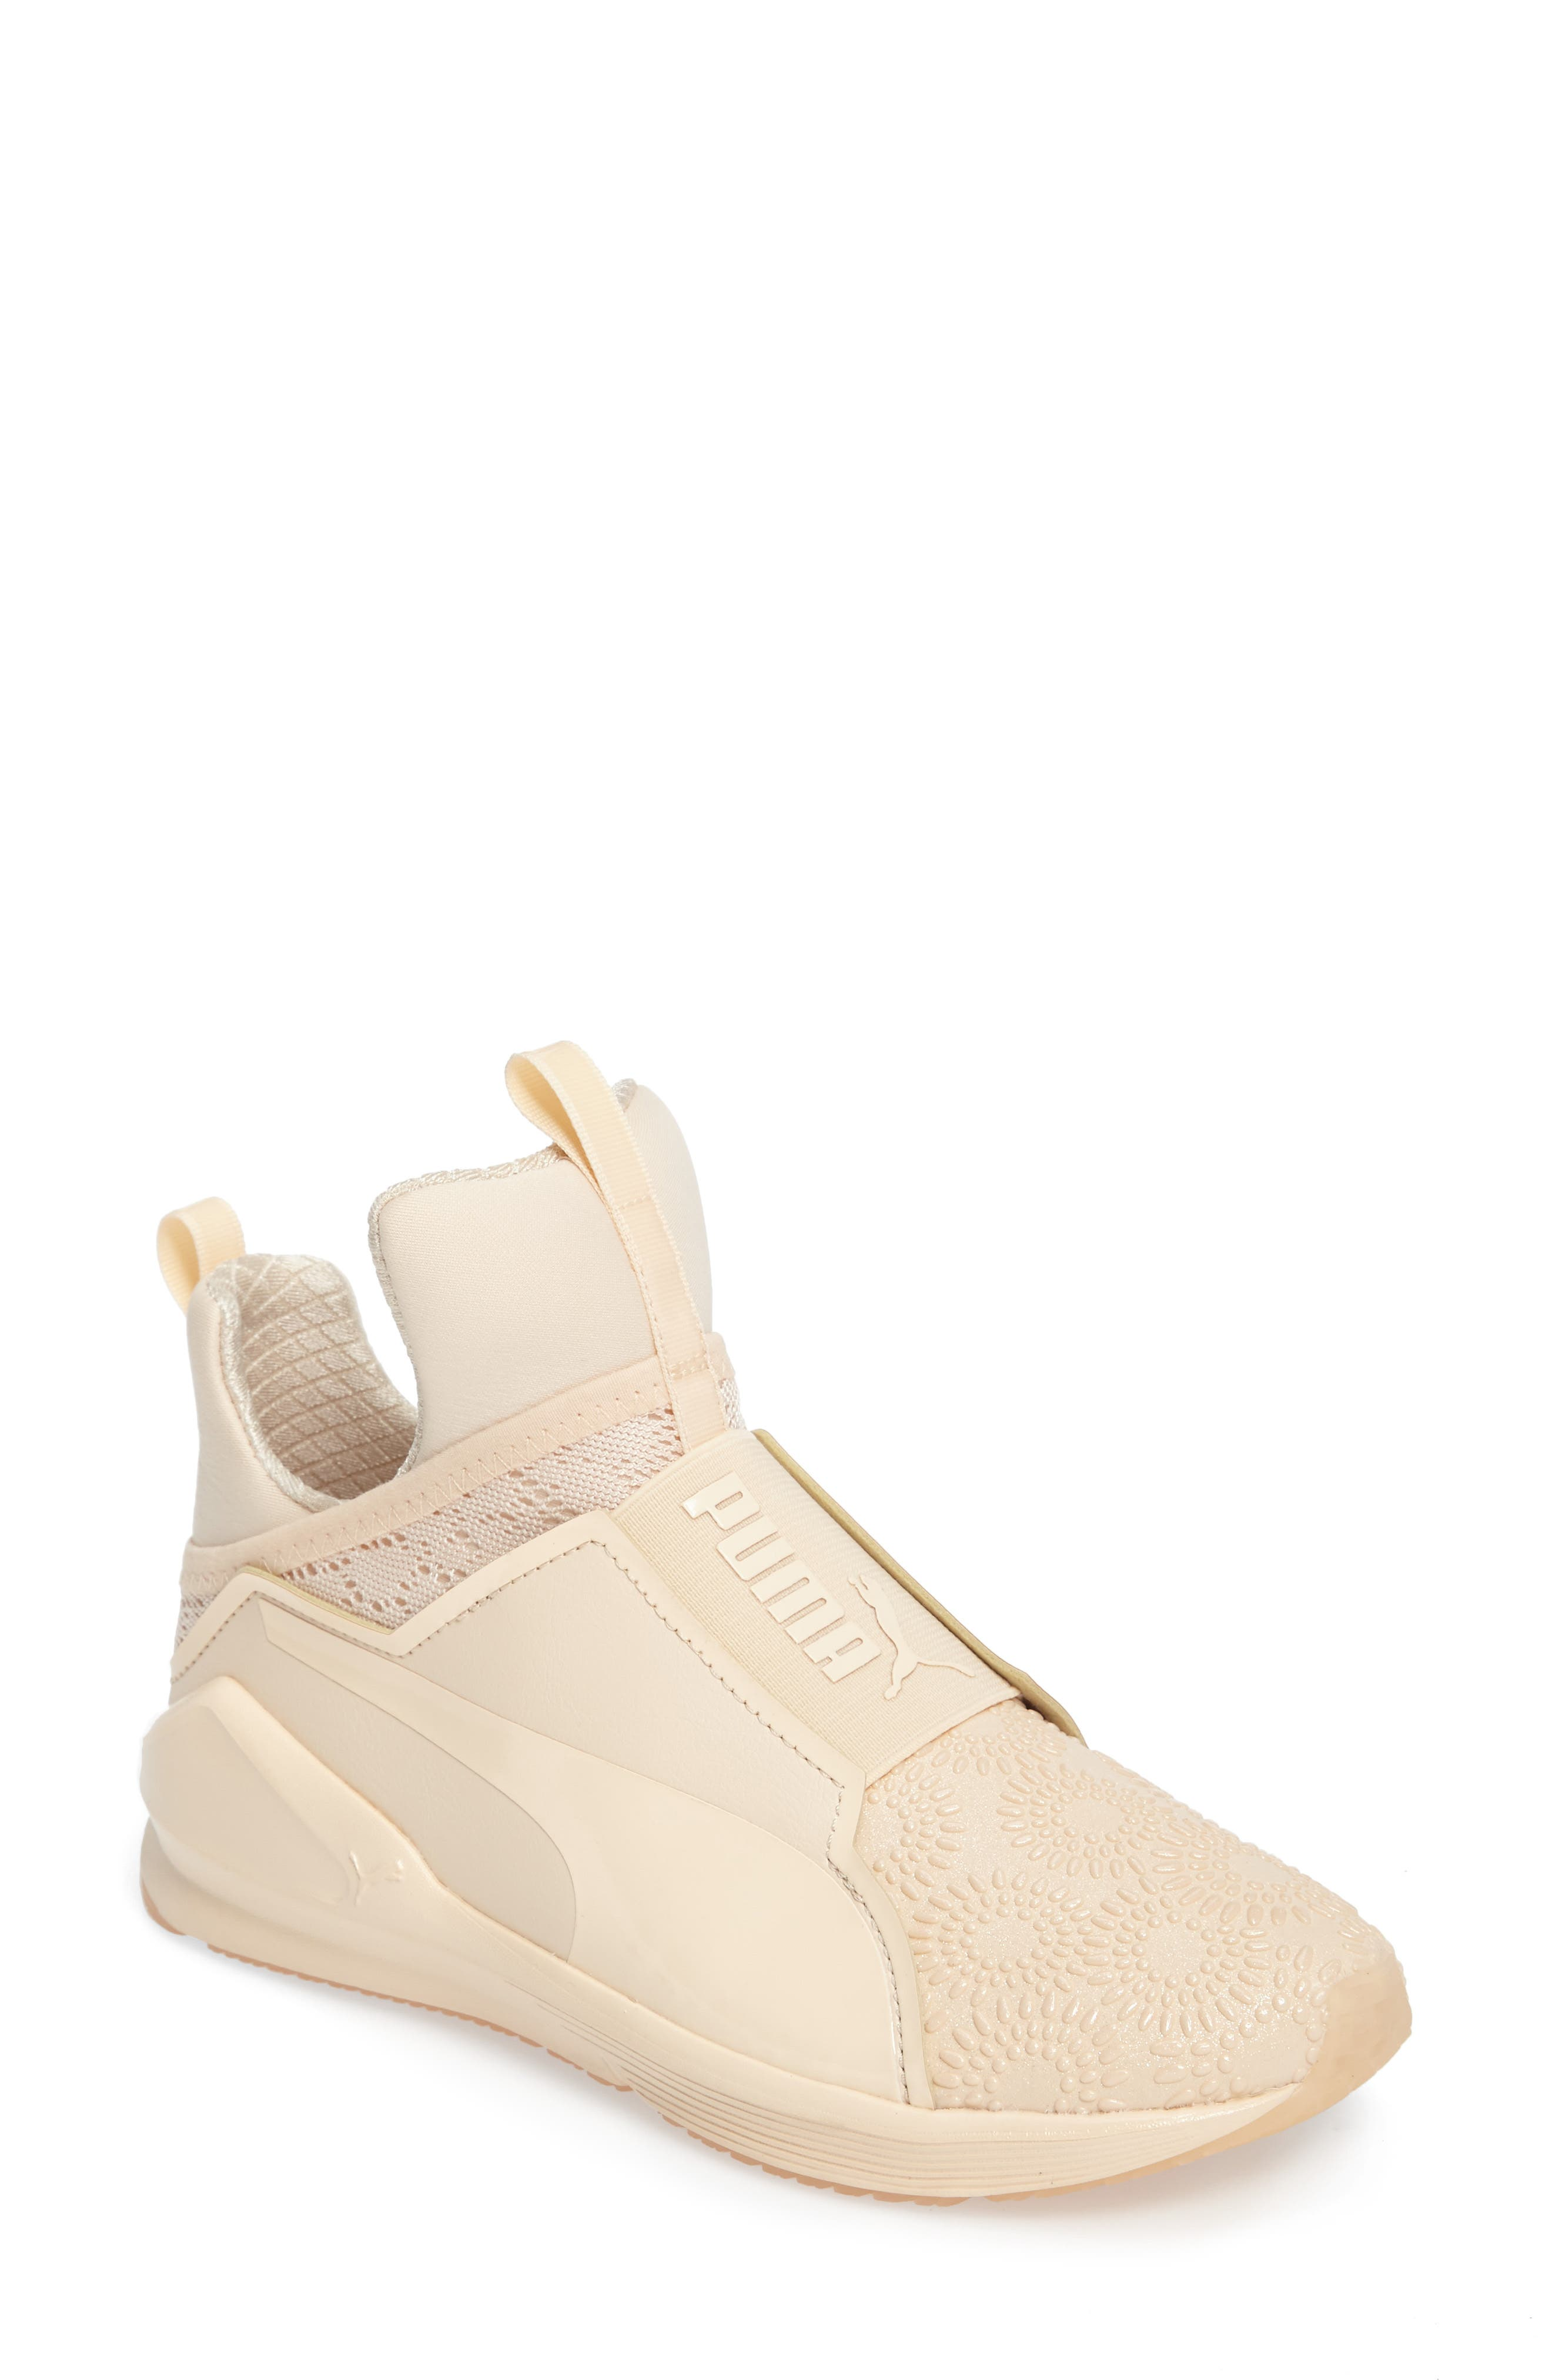 PUMA Fierce KRM High Top Sneaker